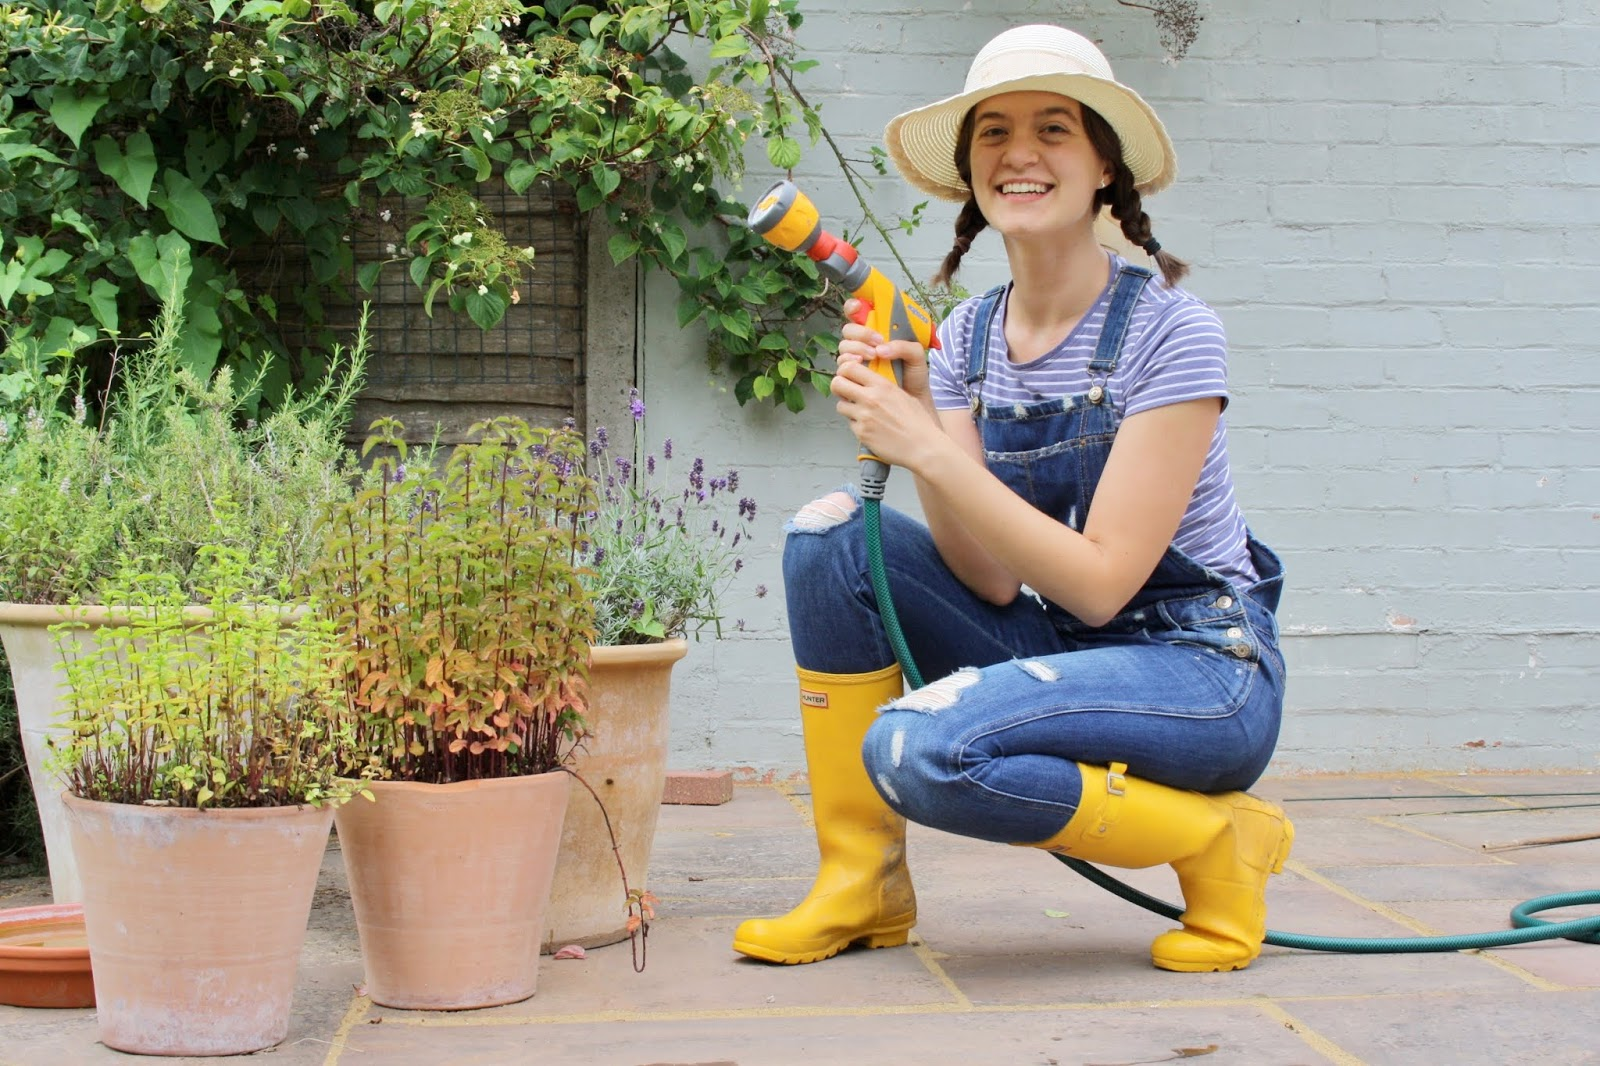 Abbey, crouching down on one knee, holds a hose next to some pot plants. She wears denim dungarees and yellow wellies